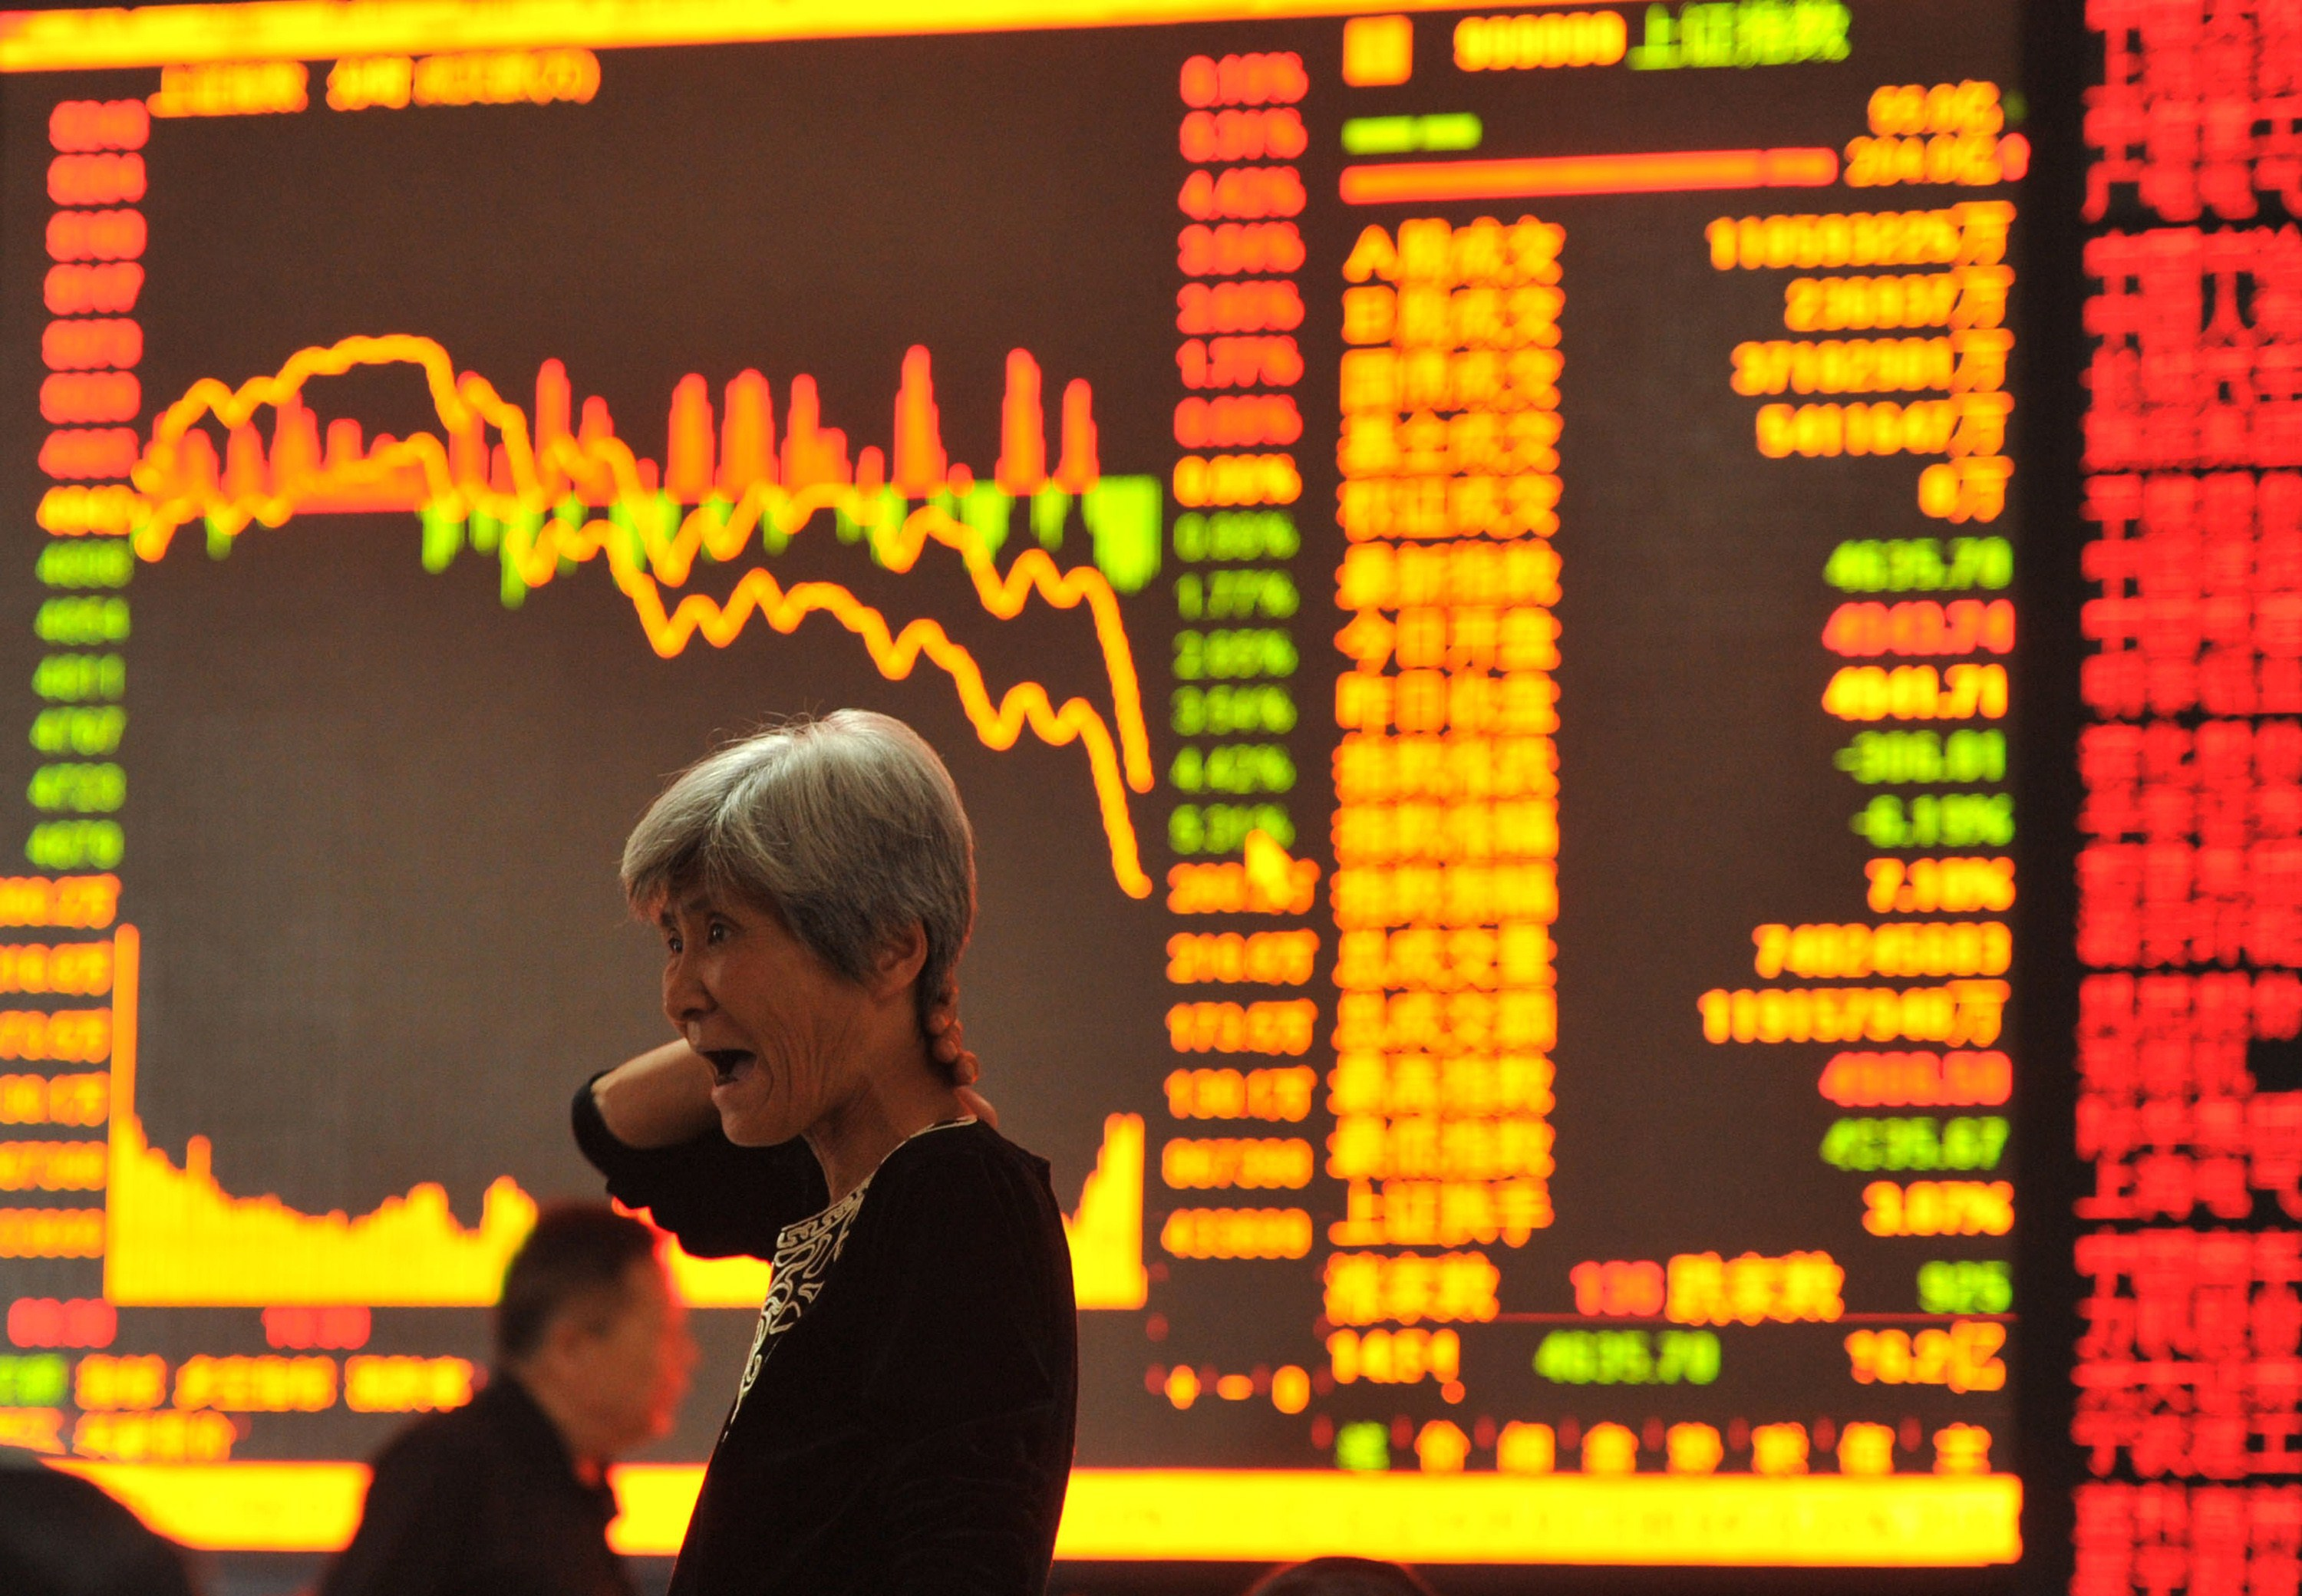 A stock investor gestures as she checks share prices at a security firm in Fuyang, east China's Anhui province on May 28, 2015. Chinese stocks plunged 6.5 percent on May 28 on concerns over tight liquidity and stricter requirements for margin trading, after closing at a more than seven-year high the previous day, dealers said.   AFP PHOTO    CHINA OUT        (Photo credit should read STR/AFP/Getty Images)